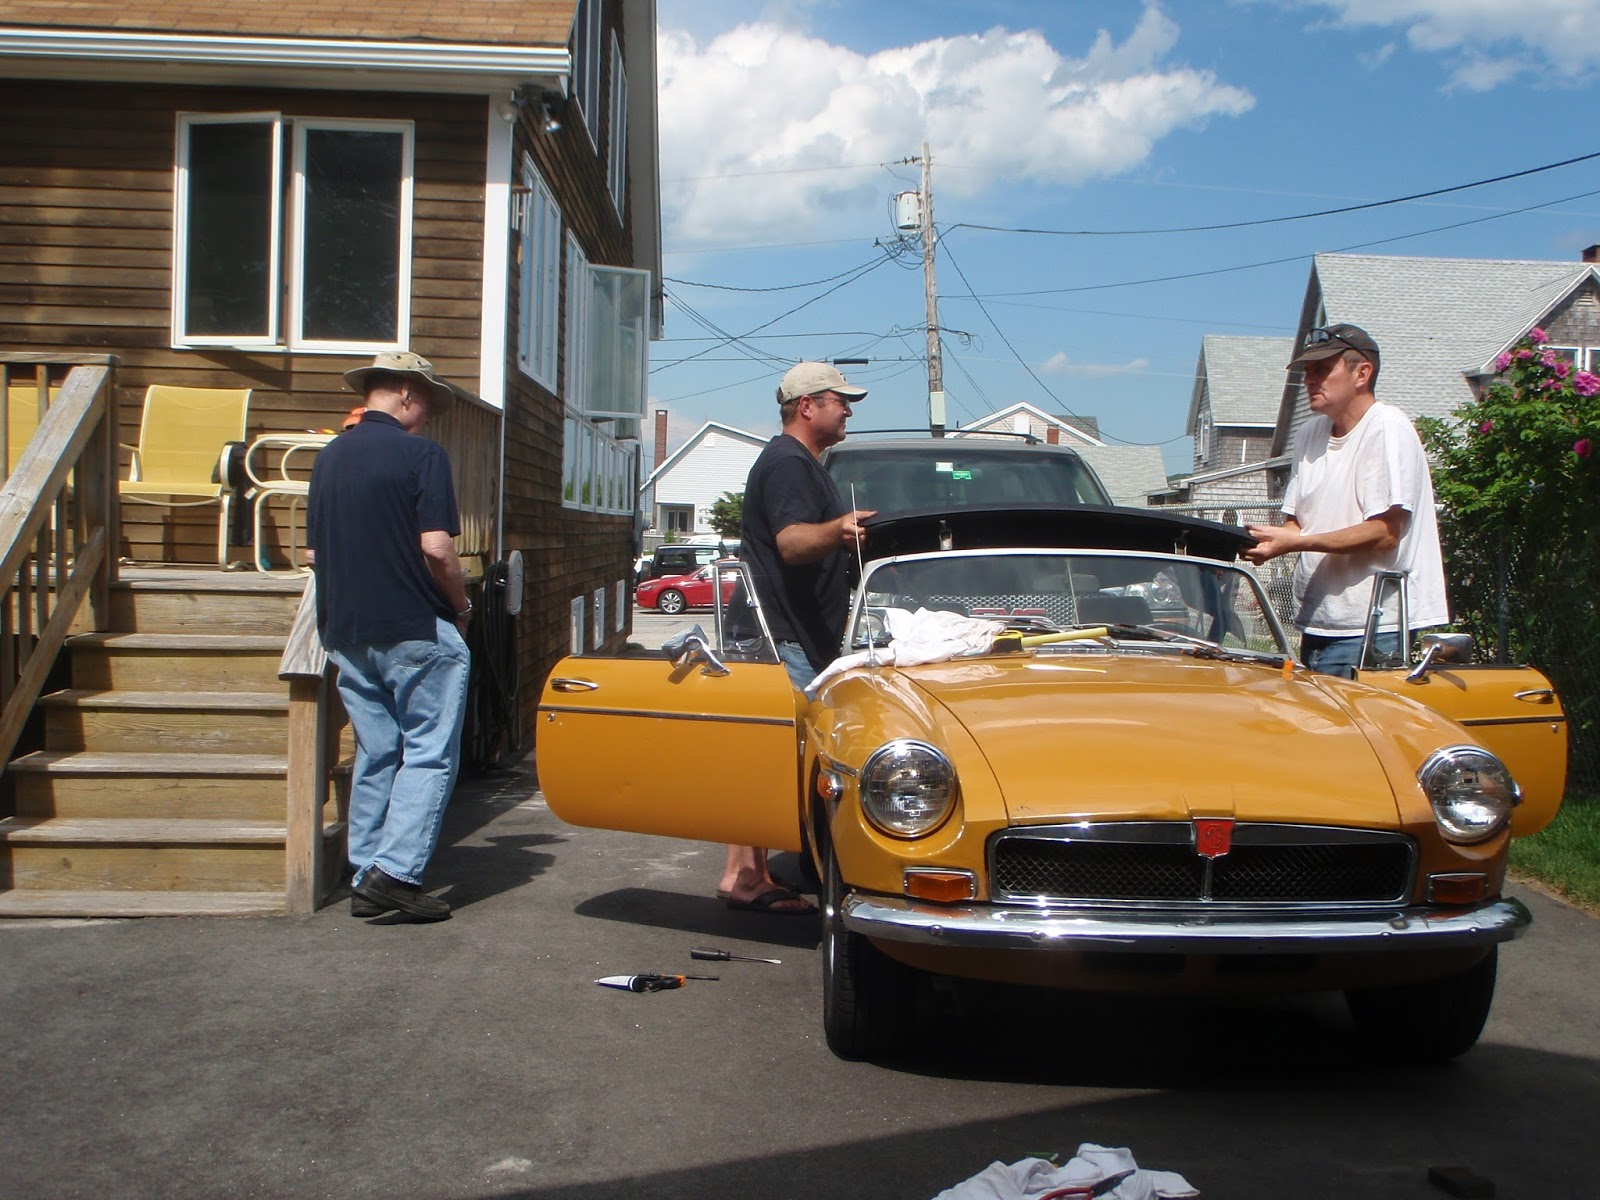 Mgb In The Garage New Wiring Harness Vinyl Top Alternator Etc Antique Car Wire Final Alignment And Fittment